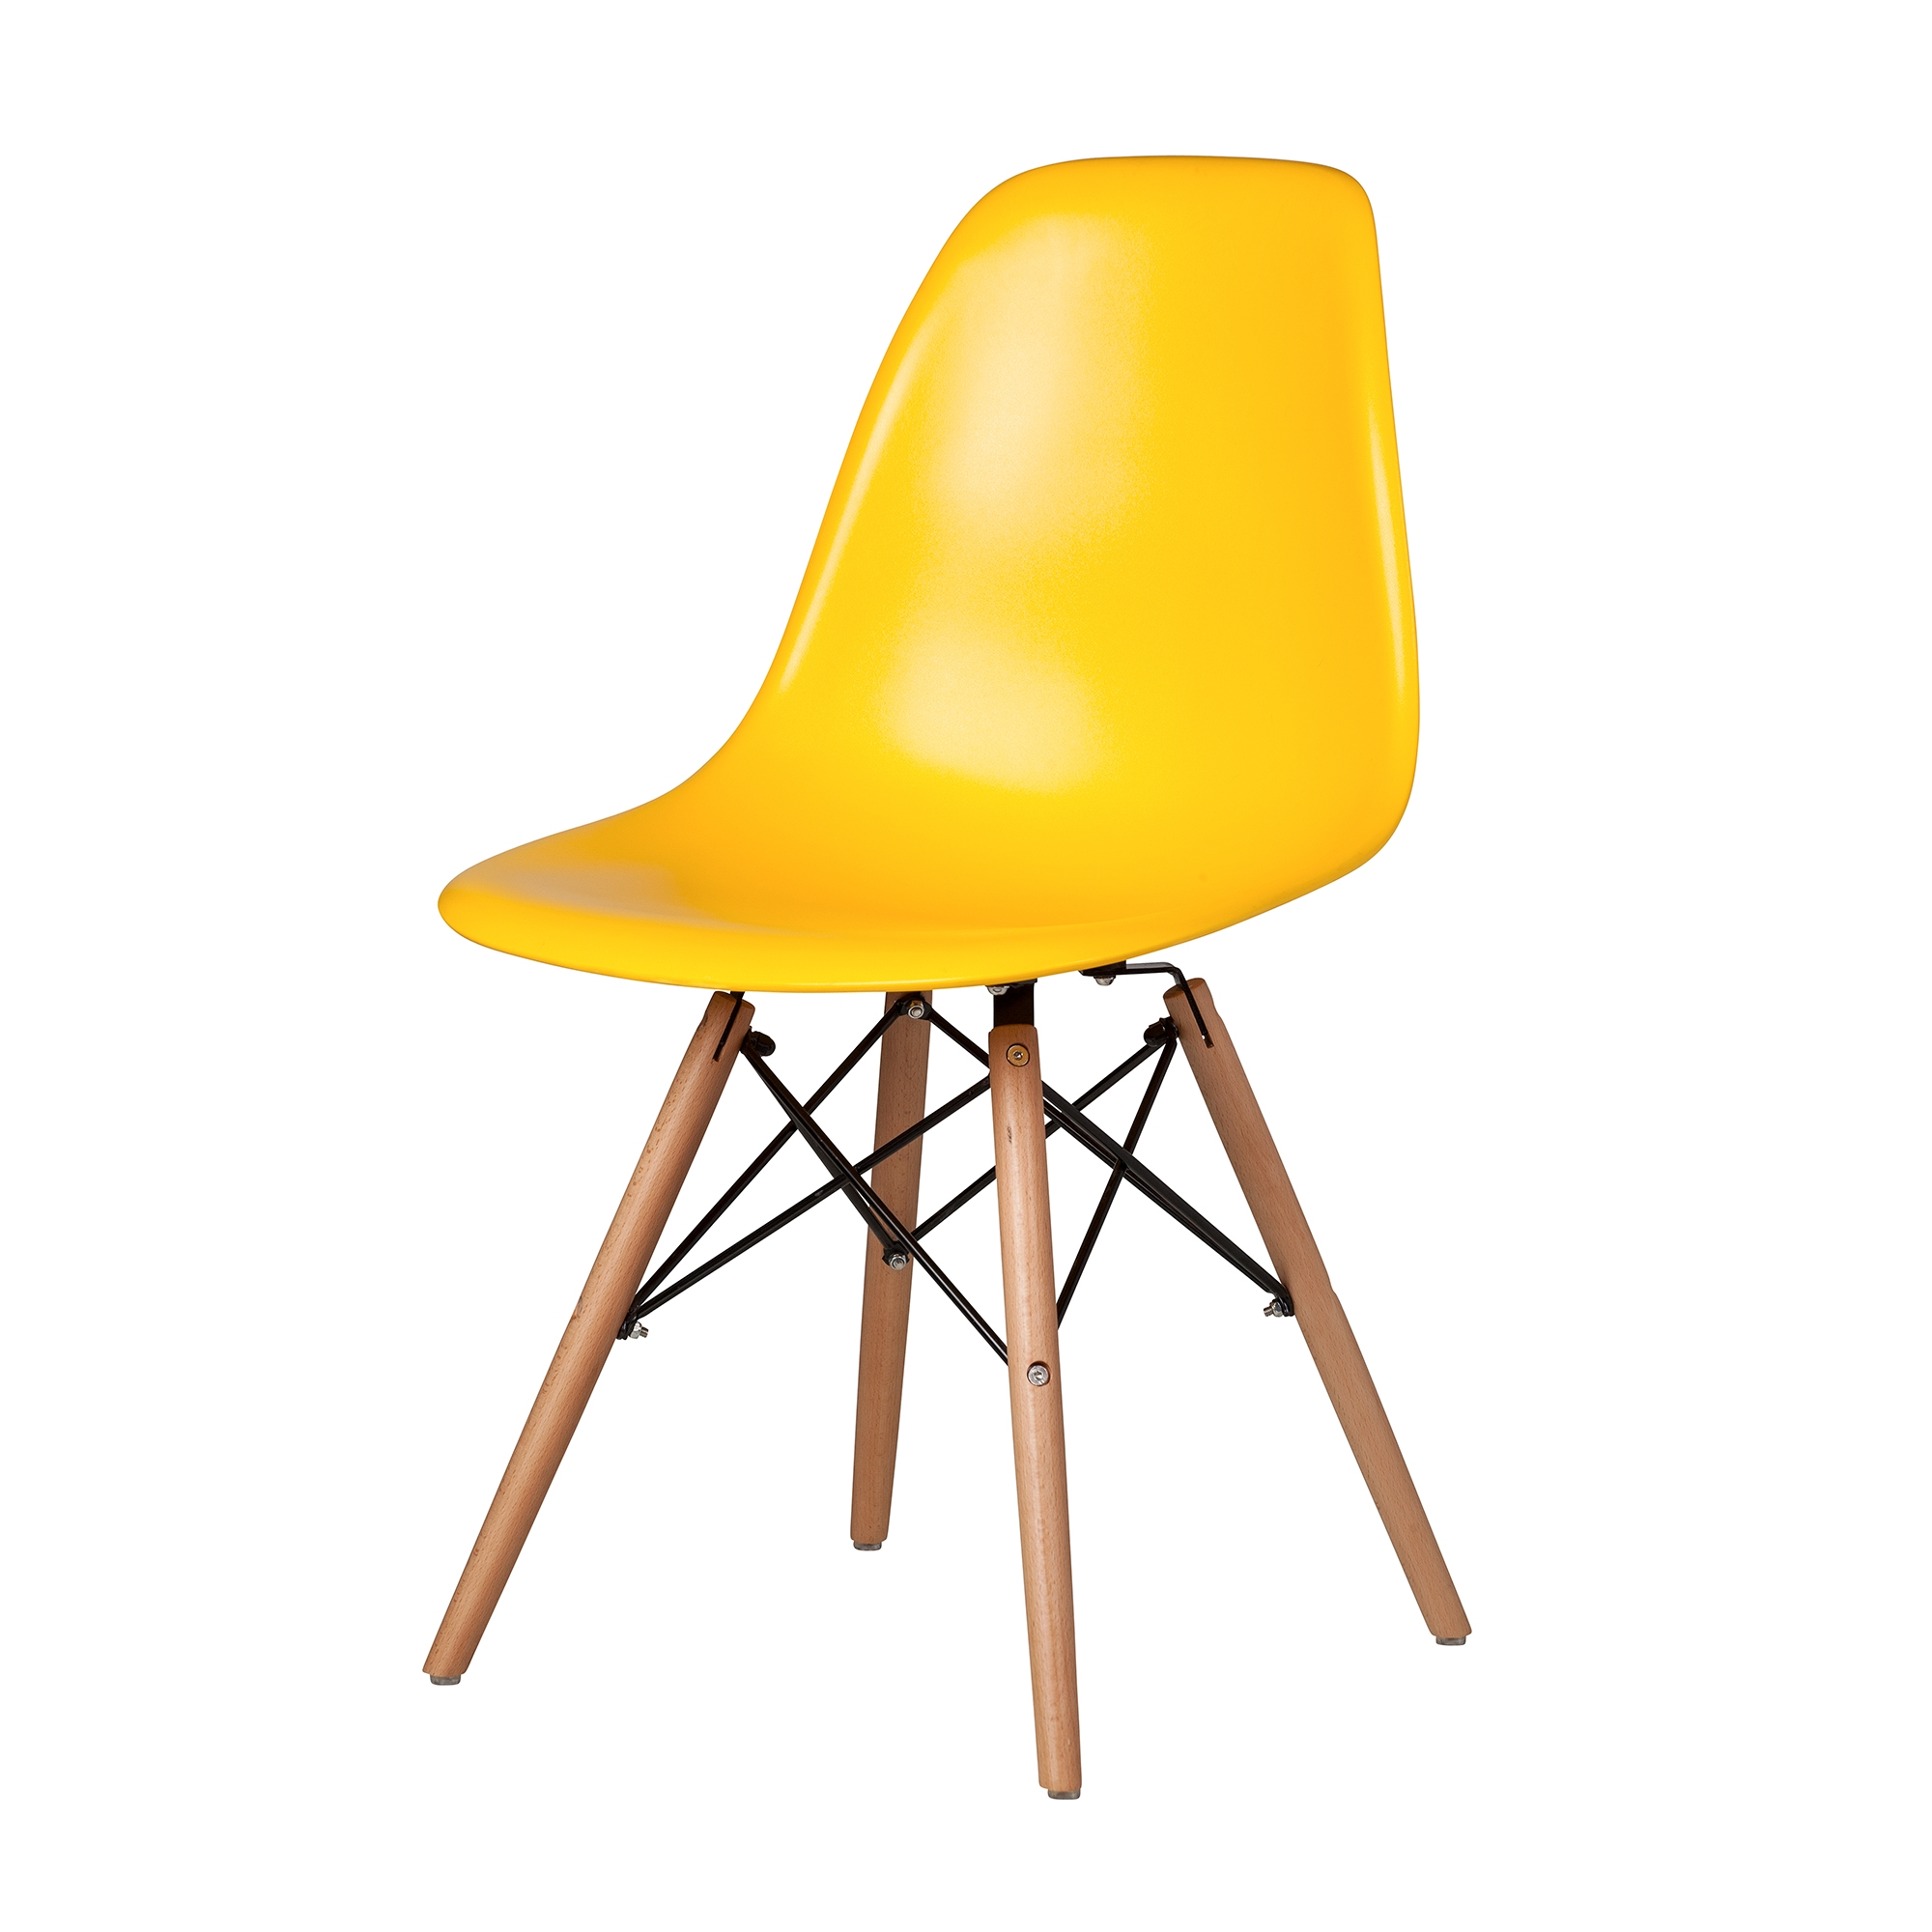 Eames style chair in yellow with dowel legs the khazana home austin furniture store